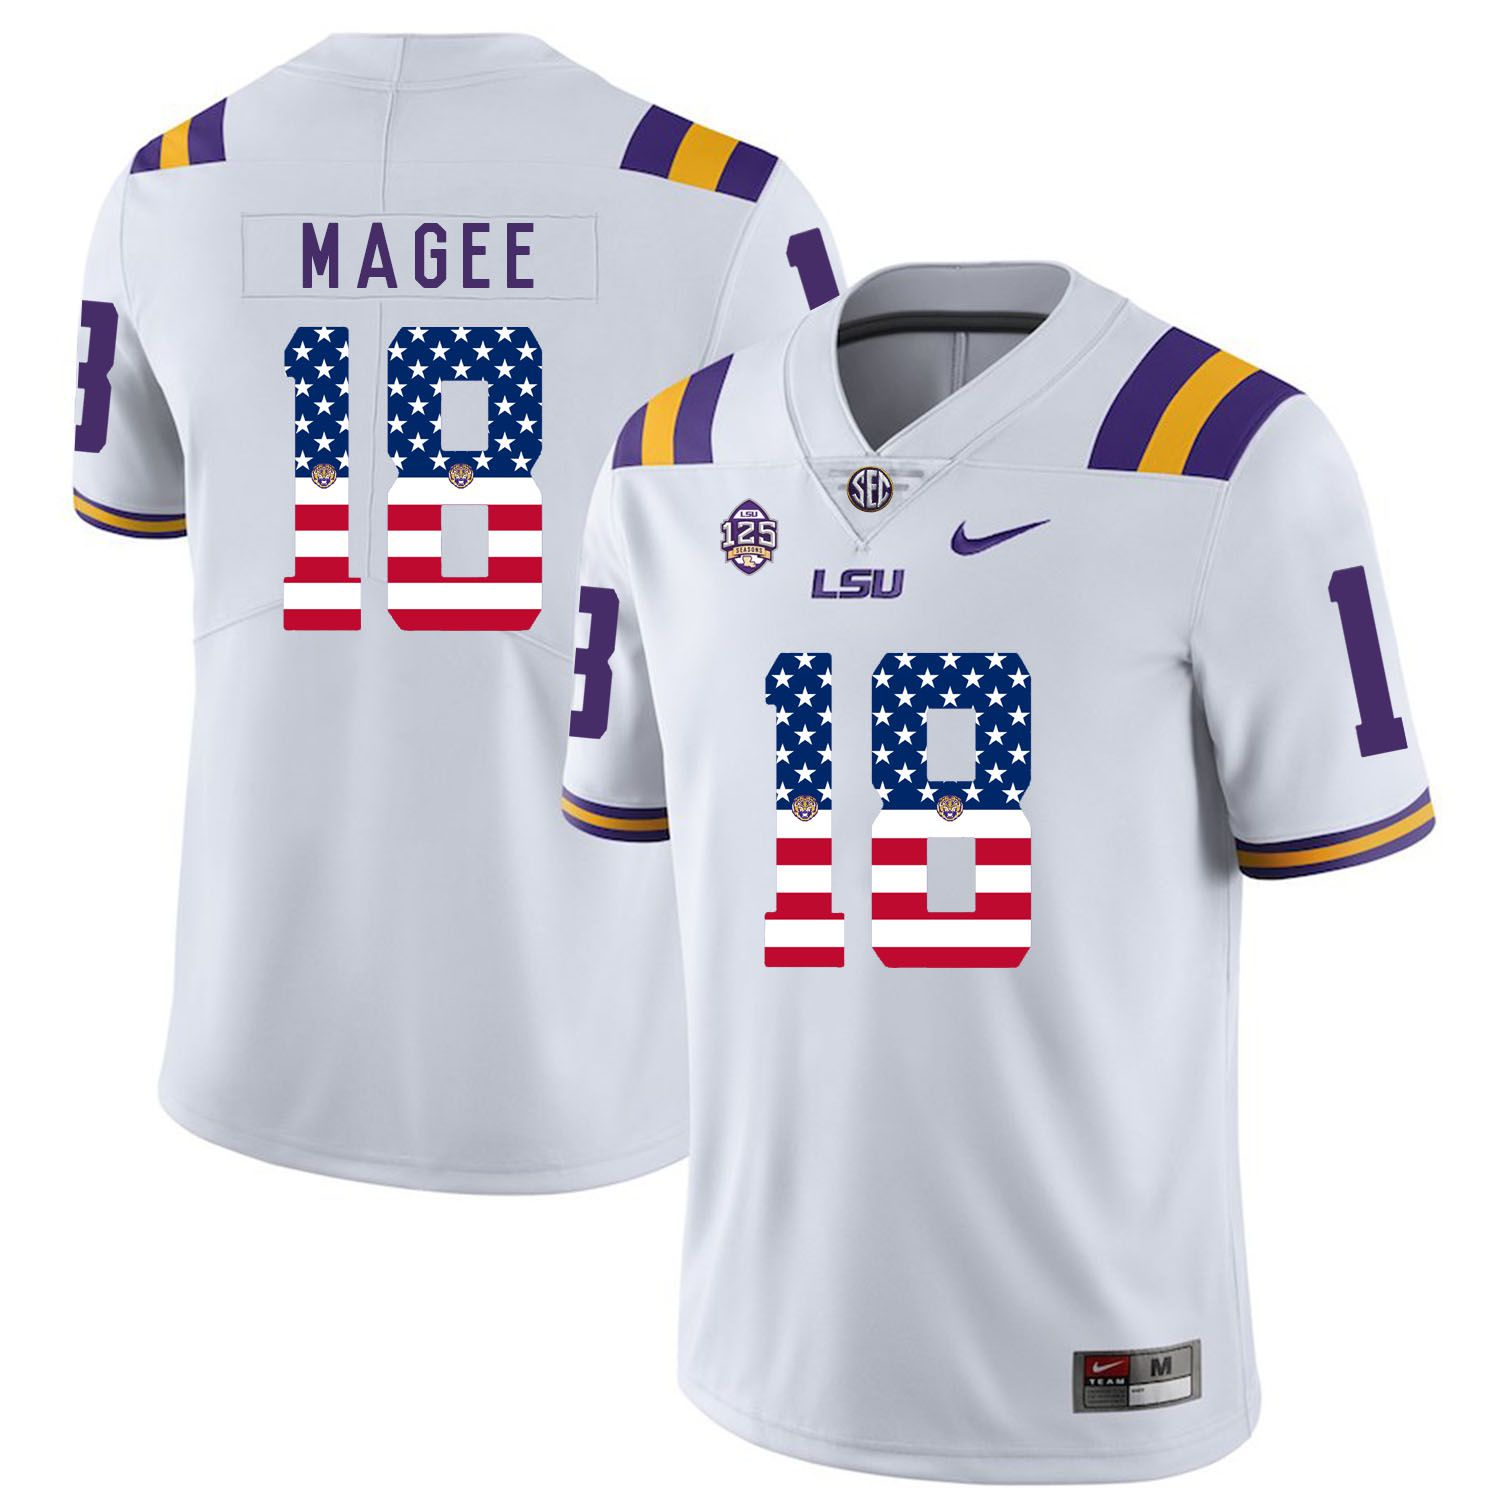 Men LSU Tigers 18 Magee White Flag Customized NCAA Jerseys